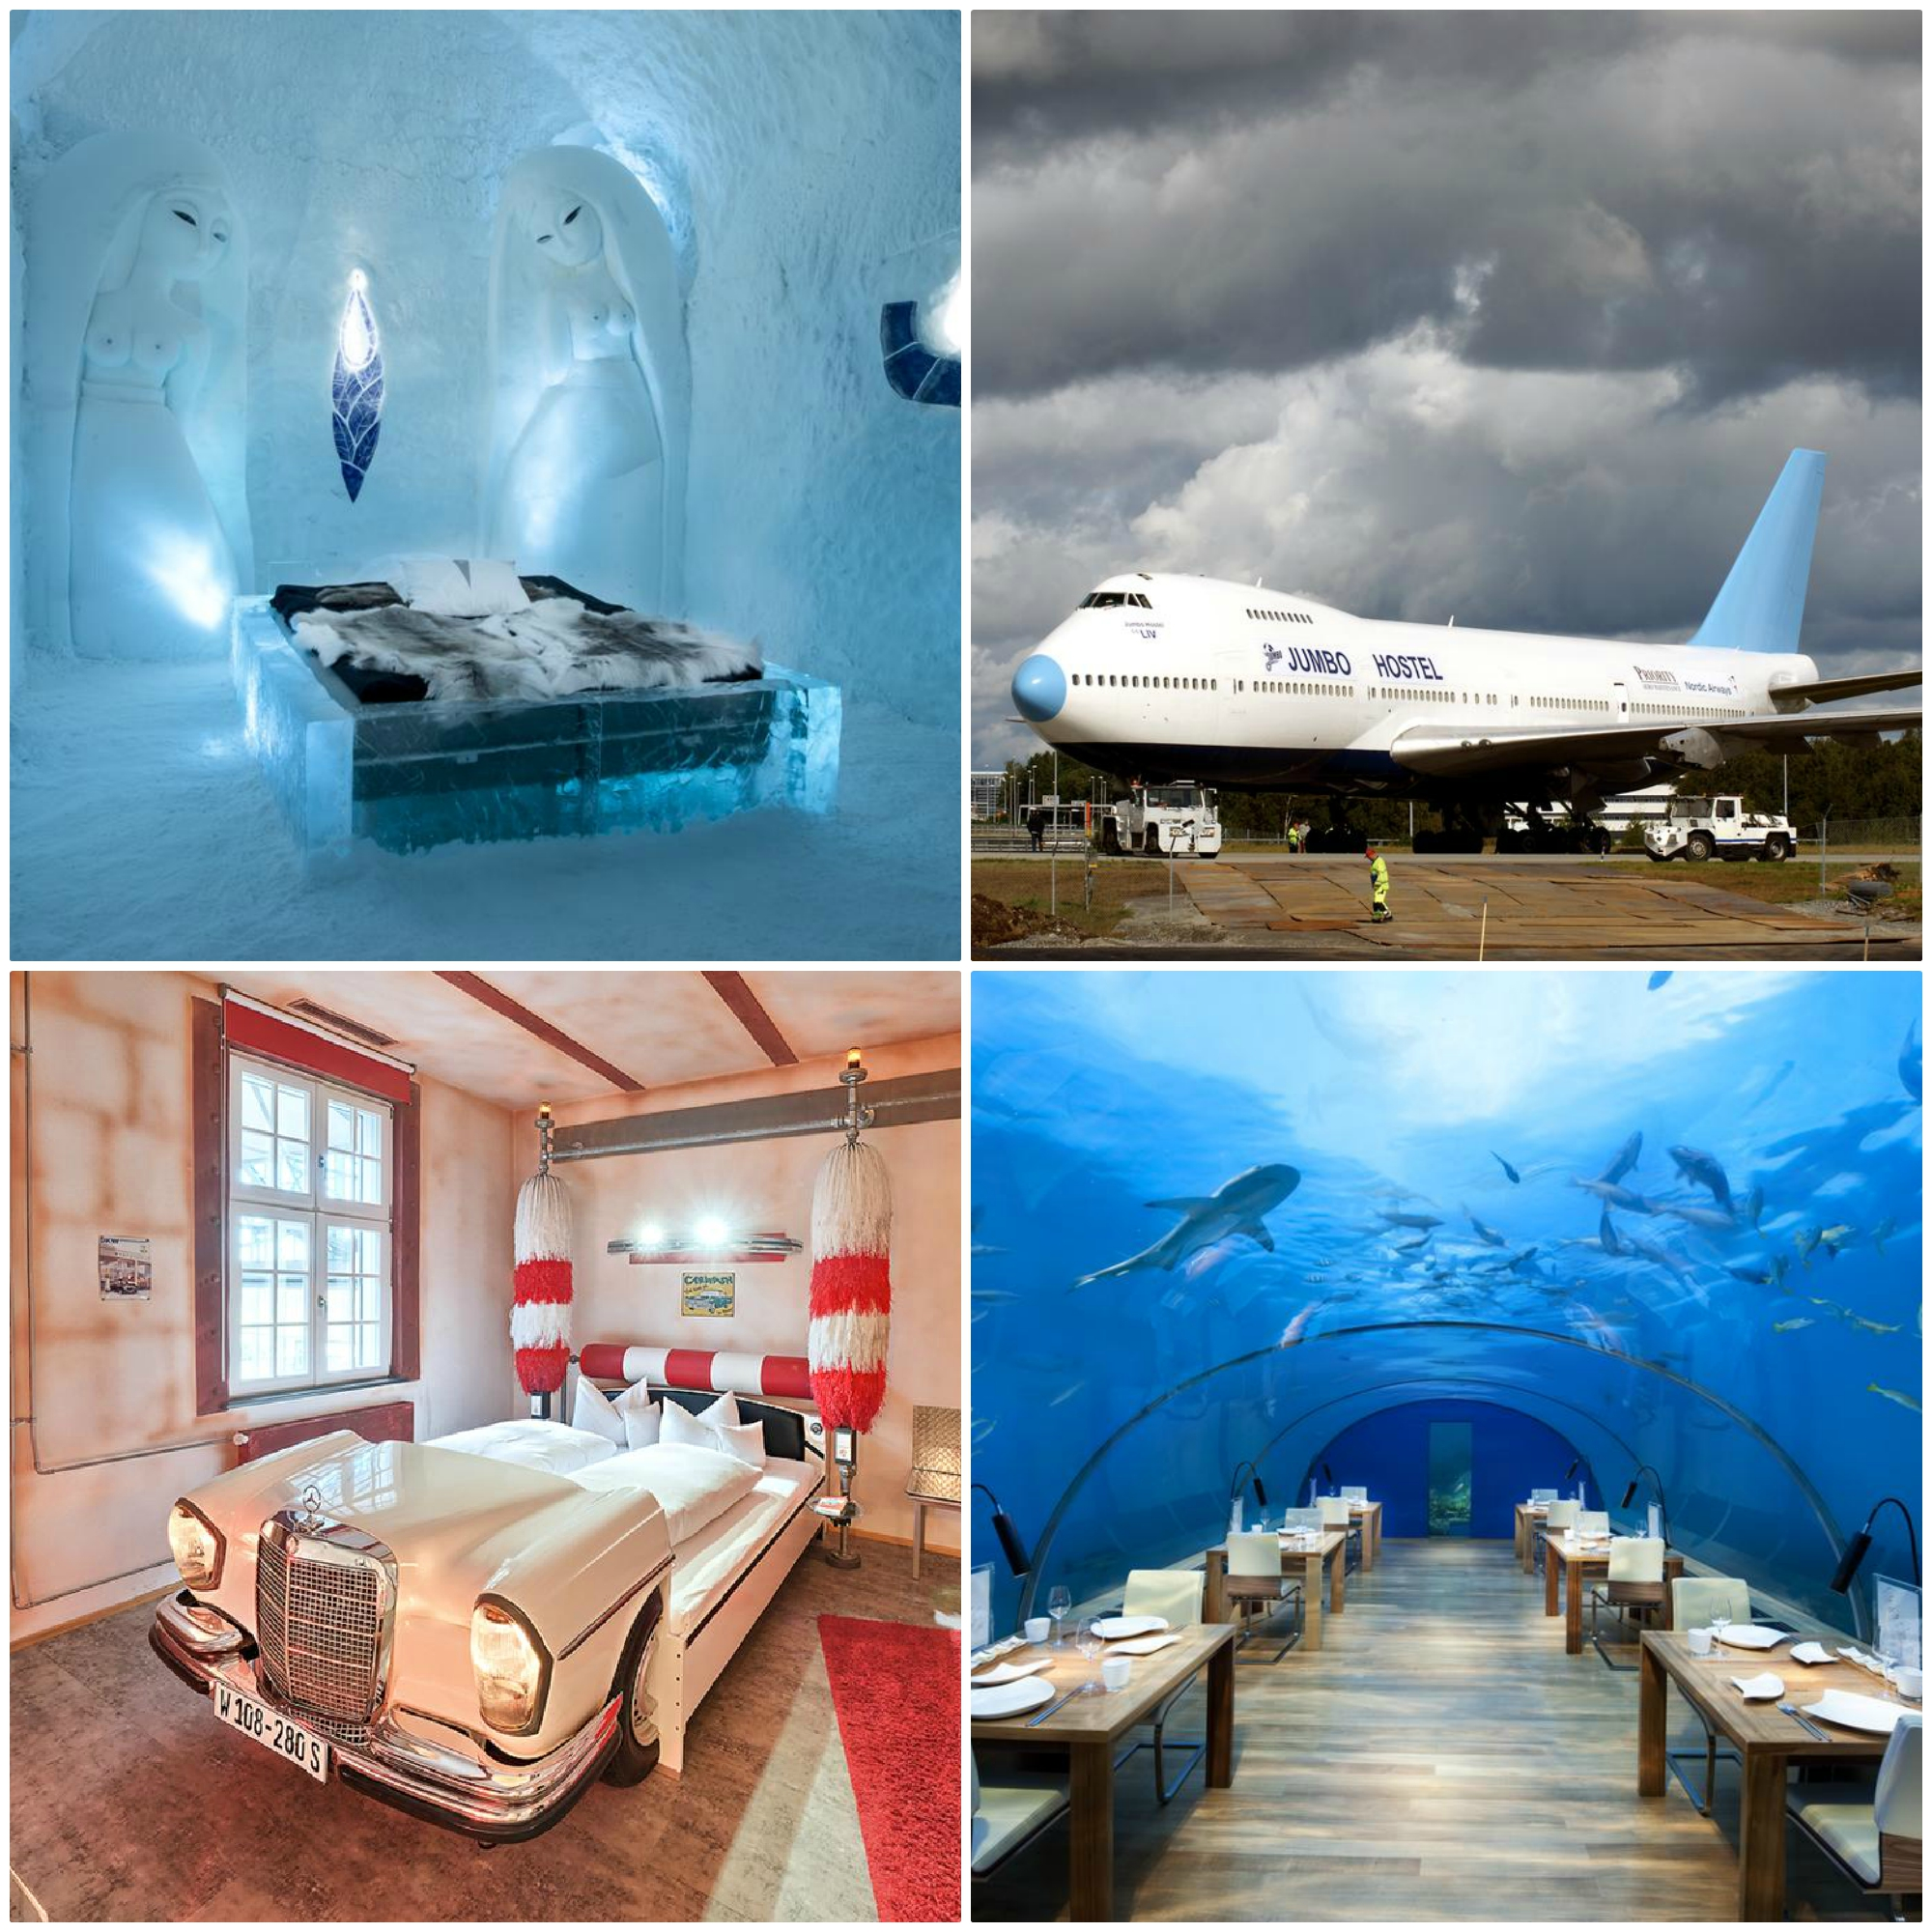 Top 10 crazy cool hotels in the world!